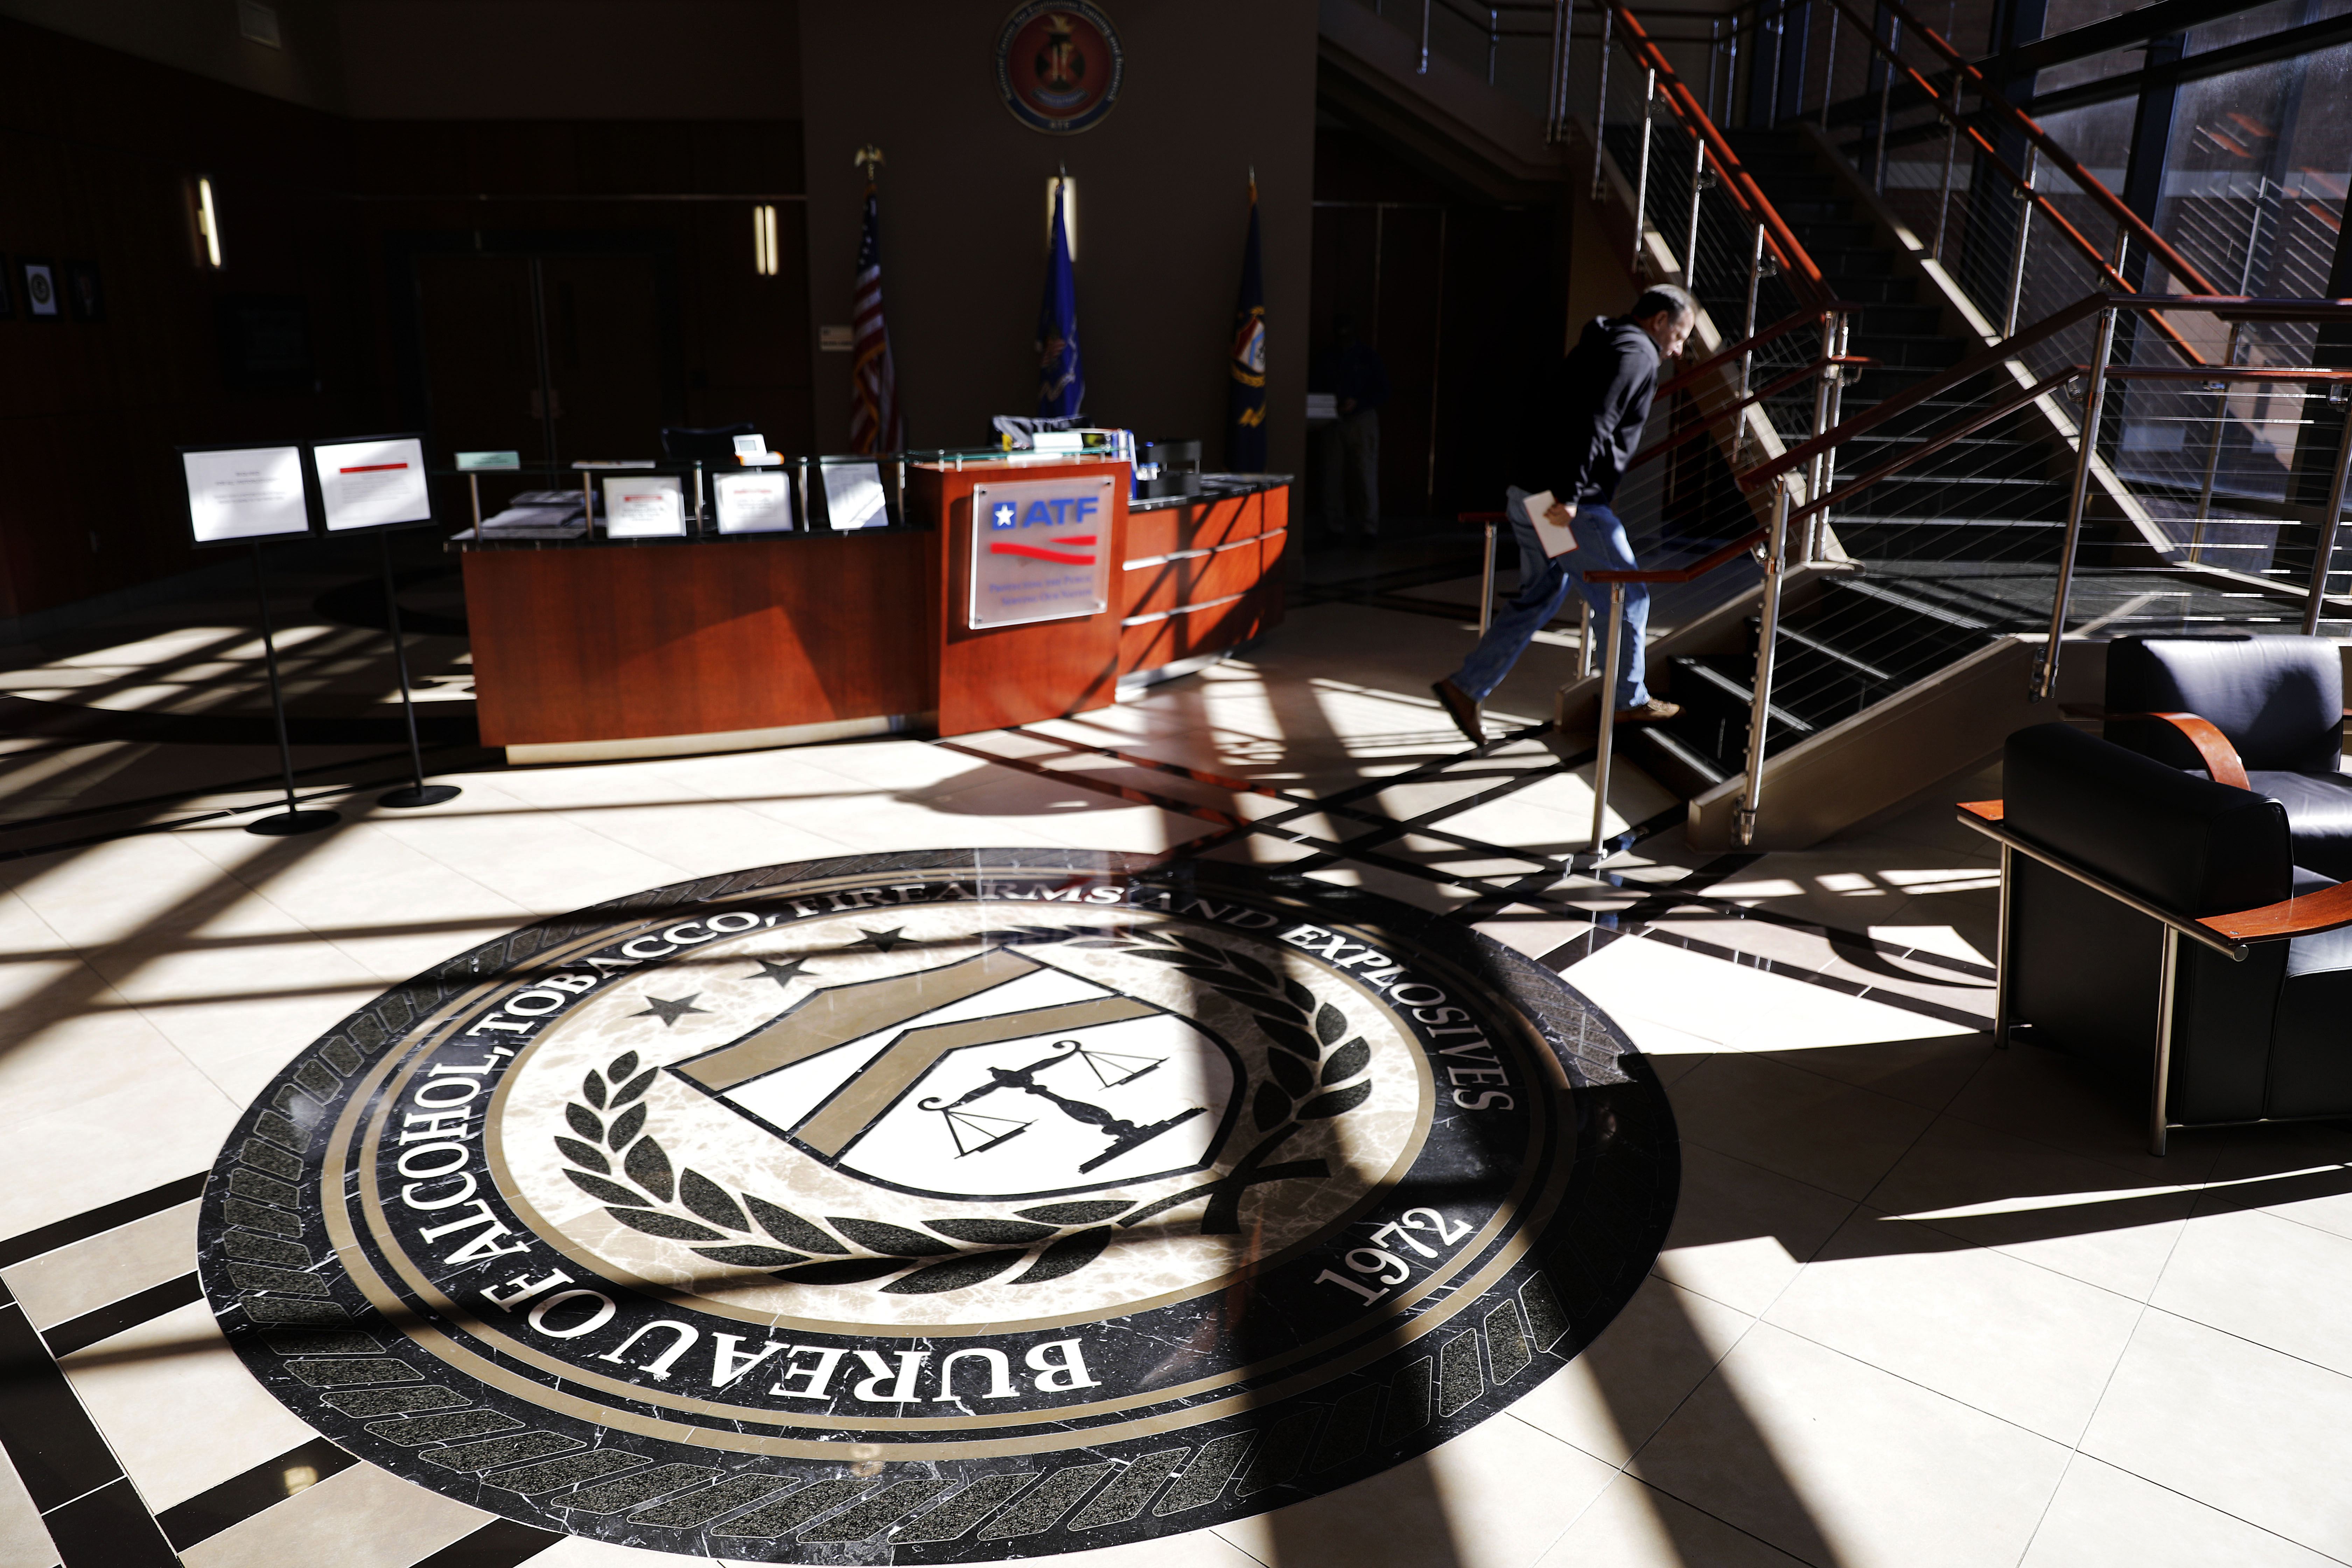 A worker walks through the empty lobby of the federal Bureau of Alcohol, Tobacco, Firearms and Explosives' National Center for Explosives Training and Research in Huntsville, Ala., Wednesday, Jan. 9, 2019. About 70 federal agencies are located at the Army's sprawling Redstone Arsenal, and more than half the area economy is tied to Washington spending. (David Goldman/AP)